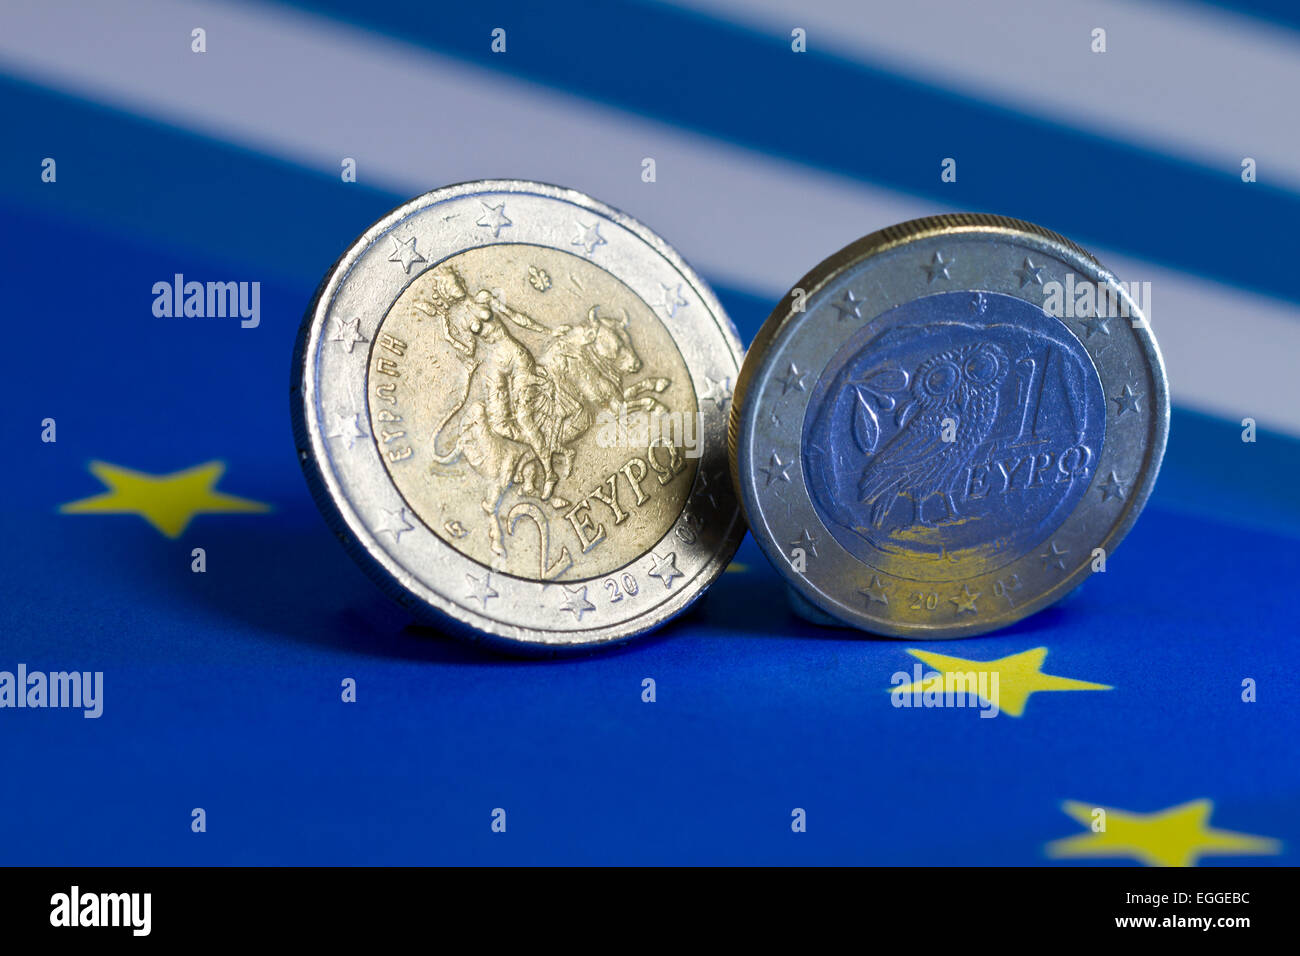 one and two Euro coins from Greece on flags - Stock Image